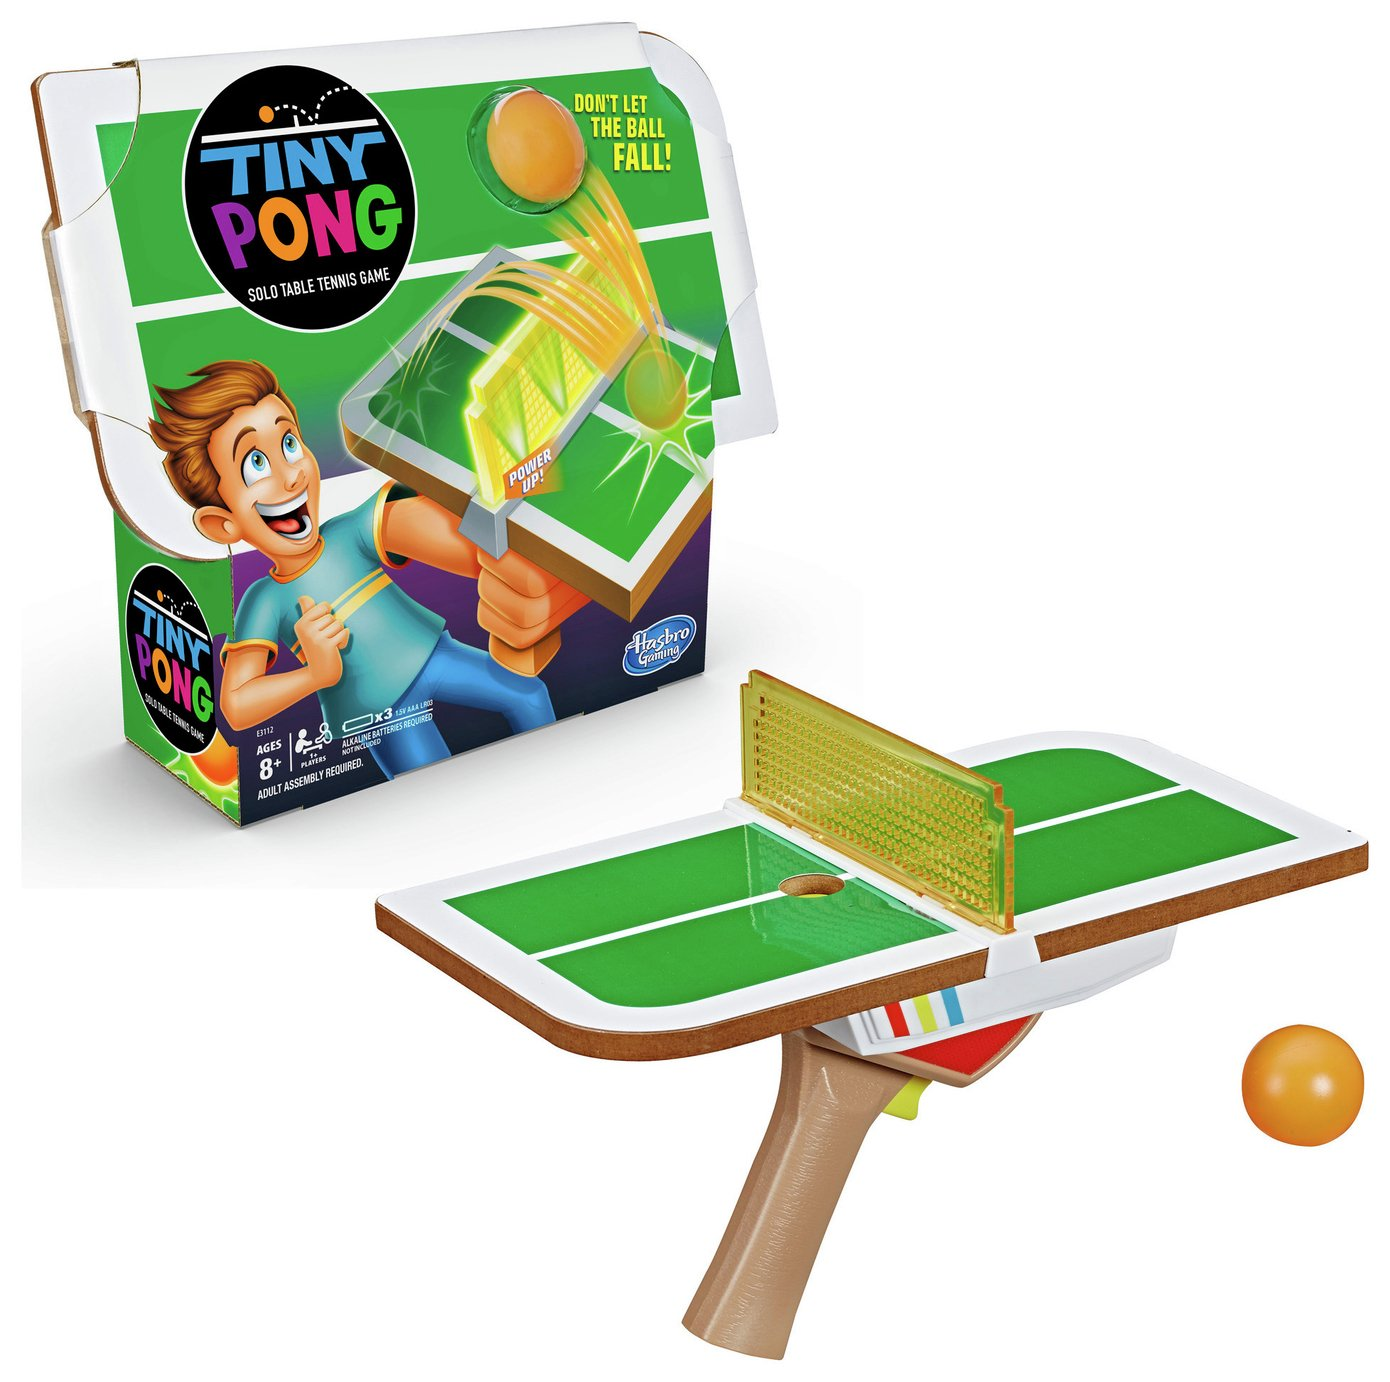 Tiny Pong Game from Hasbro Gaming